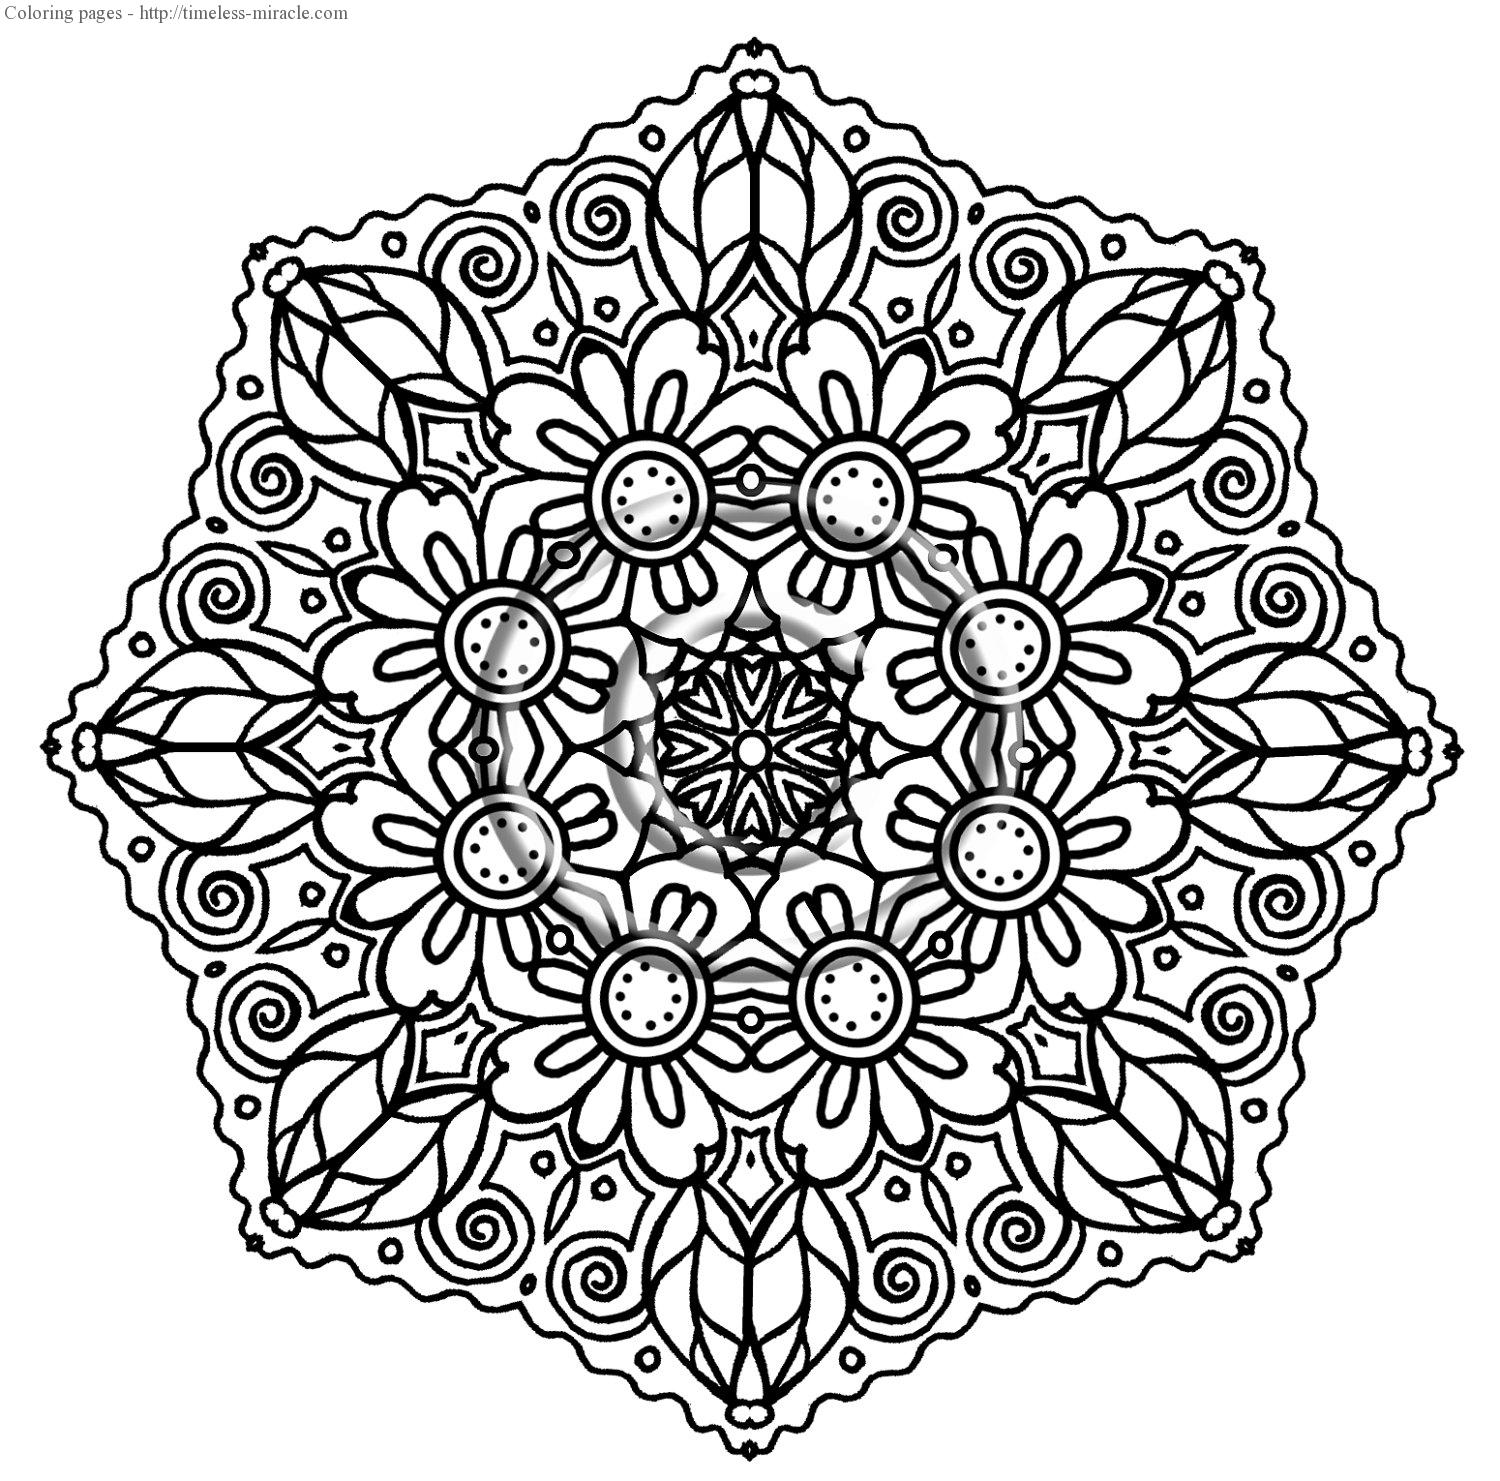 intricate coloring pages intricate coloring pages free printable coloring home intricate coloring pages